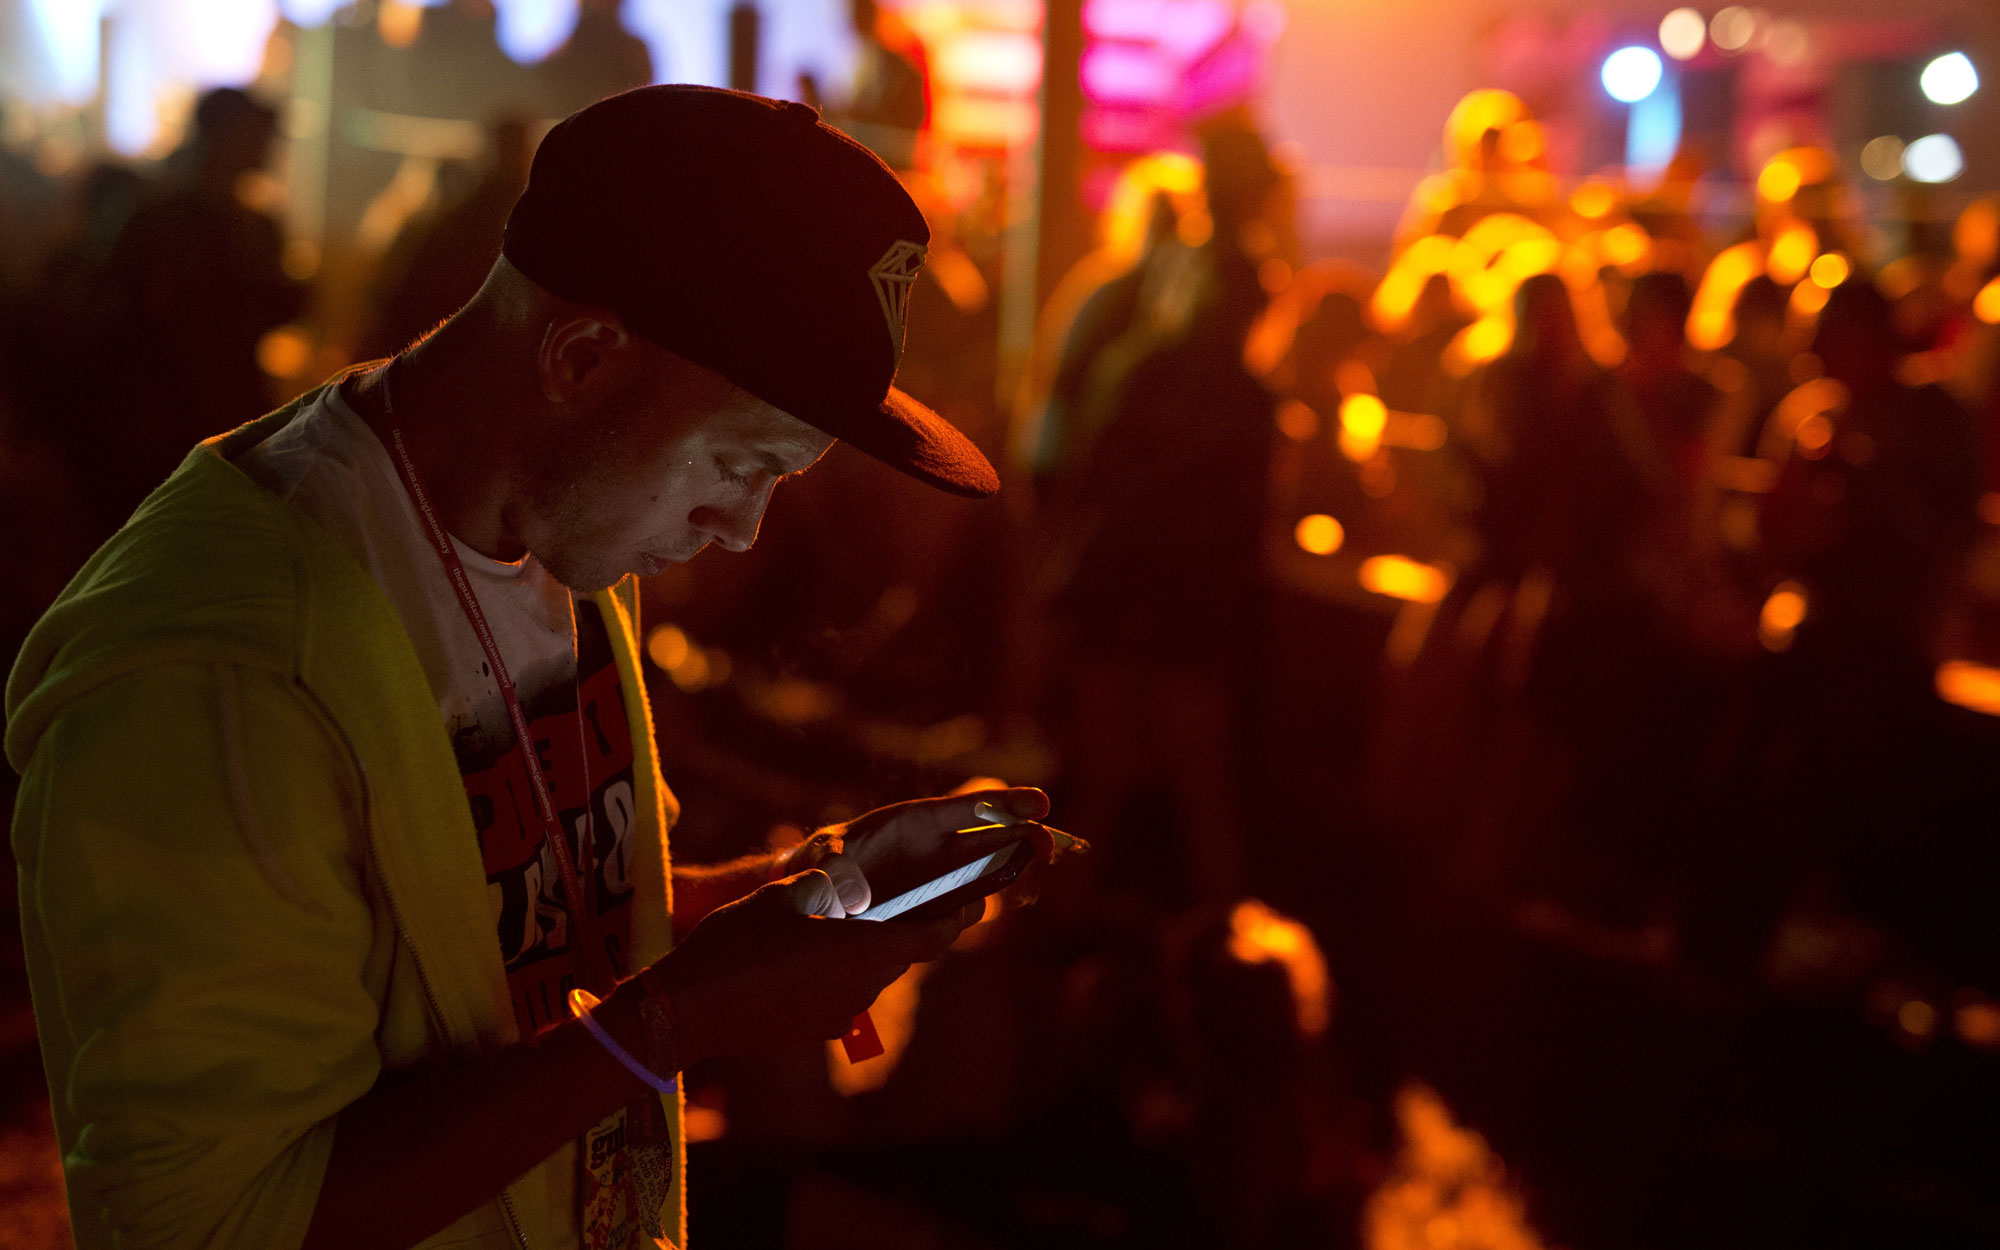 Dream Job Alert: Get Paid $5,000 to Tweet From the Hottest Music Festivals